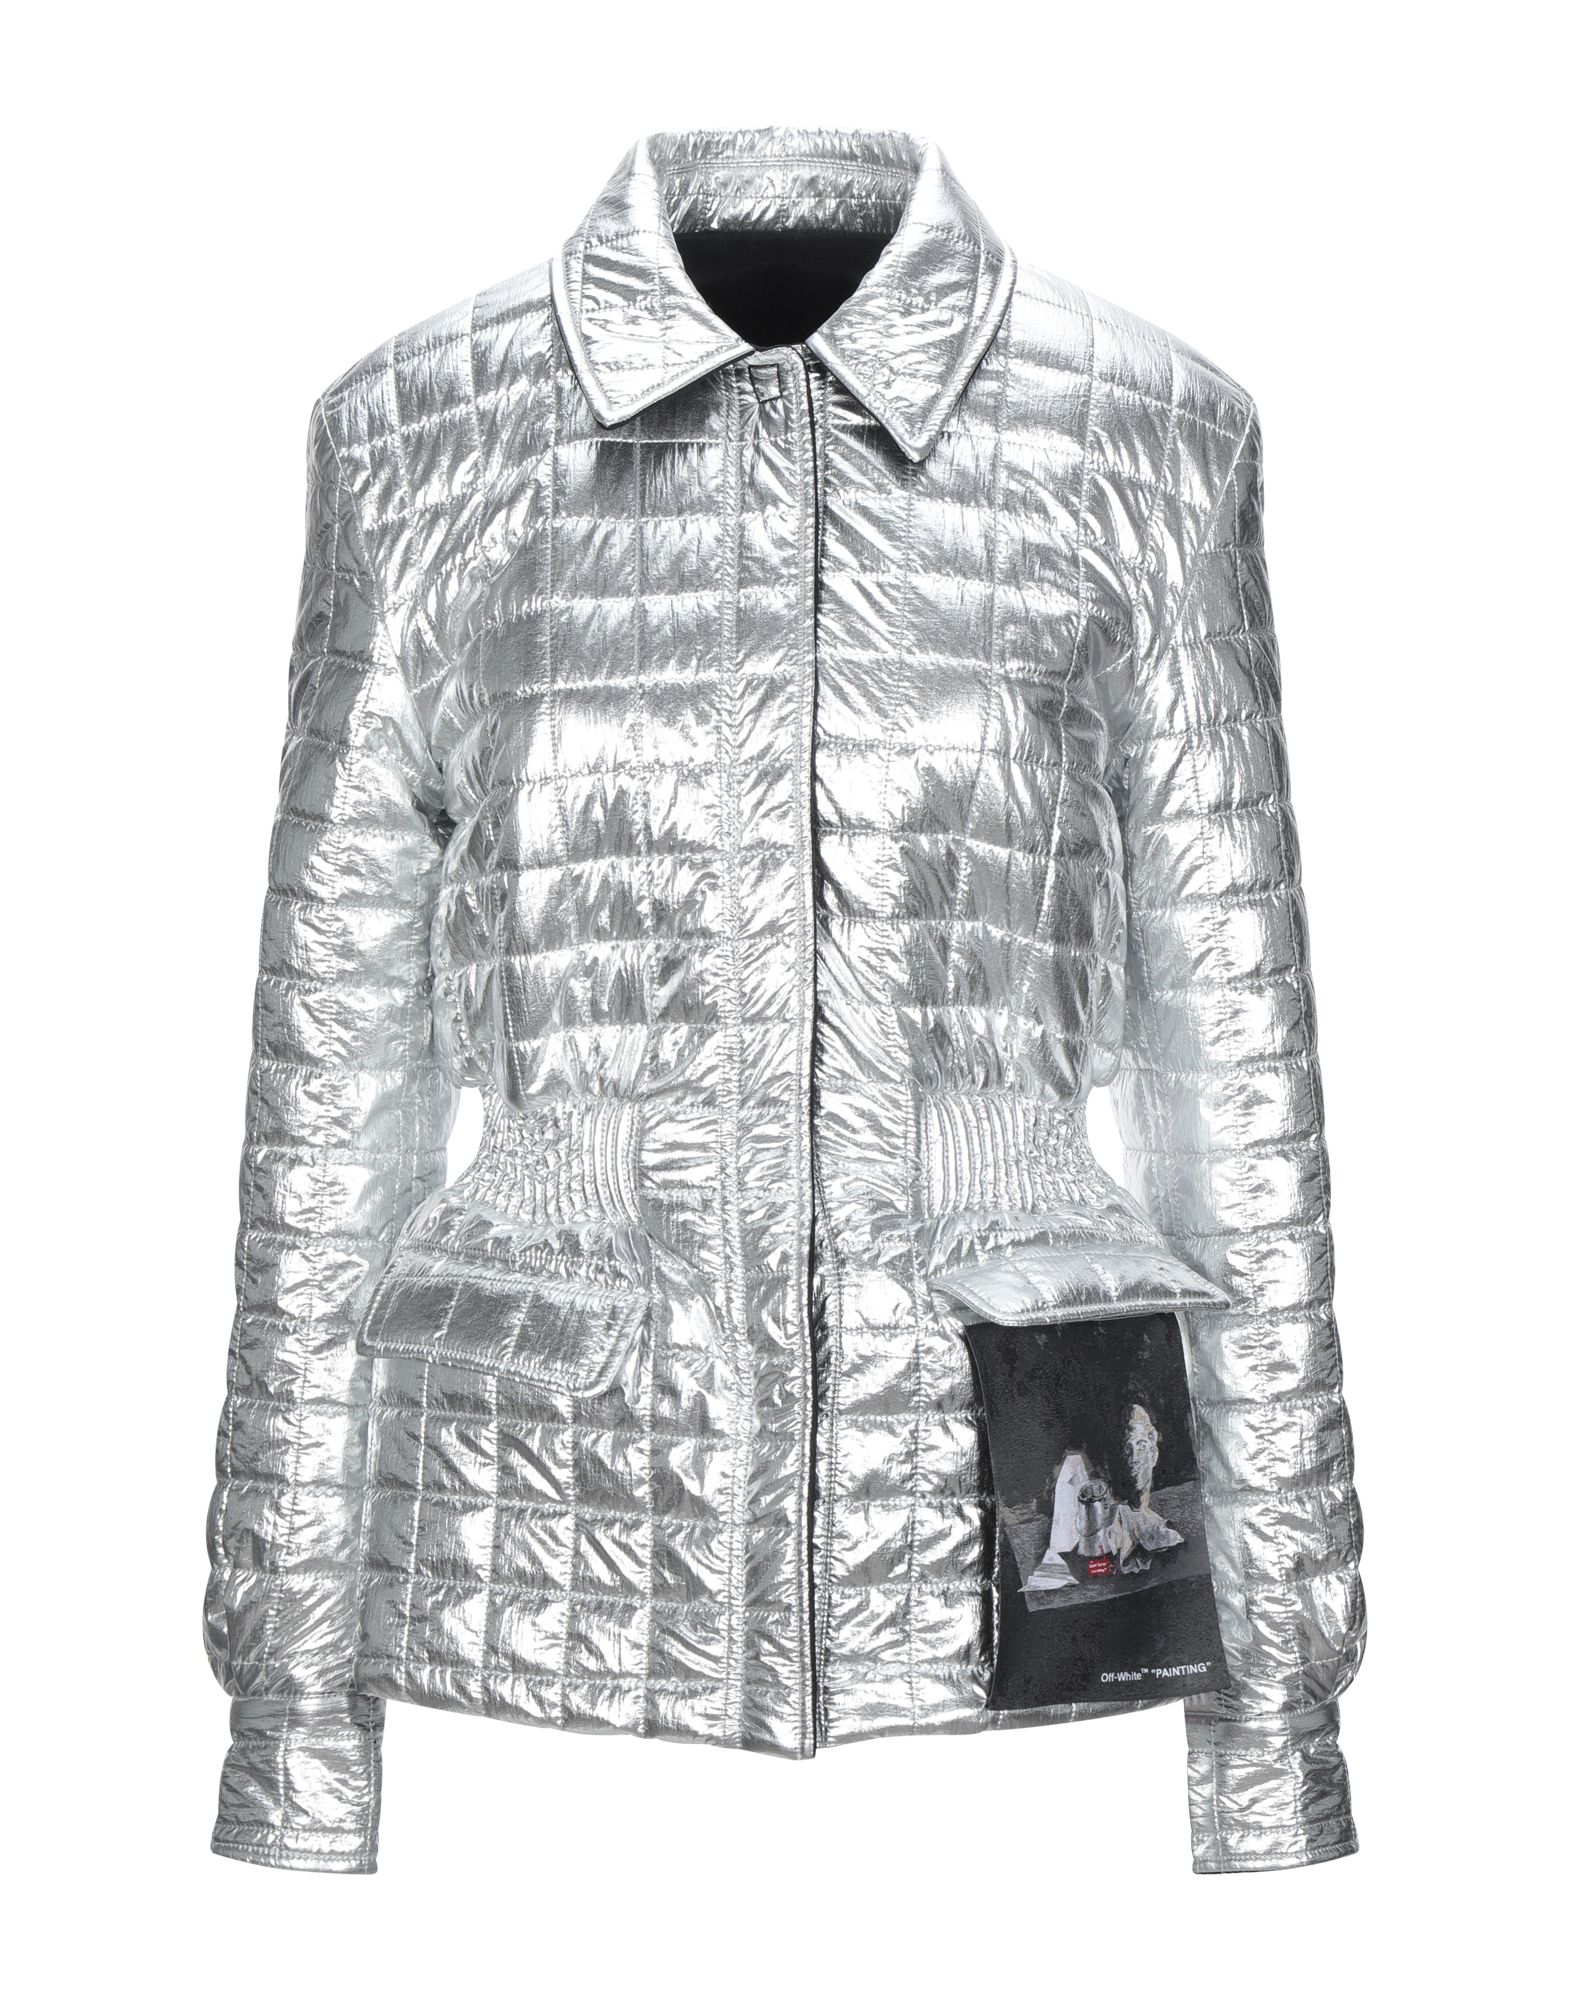 OFF-WHITE™ Synthetic Down Jackets. quilted, techno fabric, laminated effect, no appliqués, solid color, single-breasted, snap buttons fastening, classic neckline, multipockets, two inside pockets, long sleeves, snap button cuffs, internal padding. 70% Cotton, 30% Viscose, Polyamide